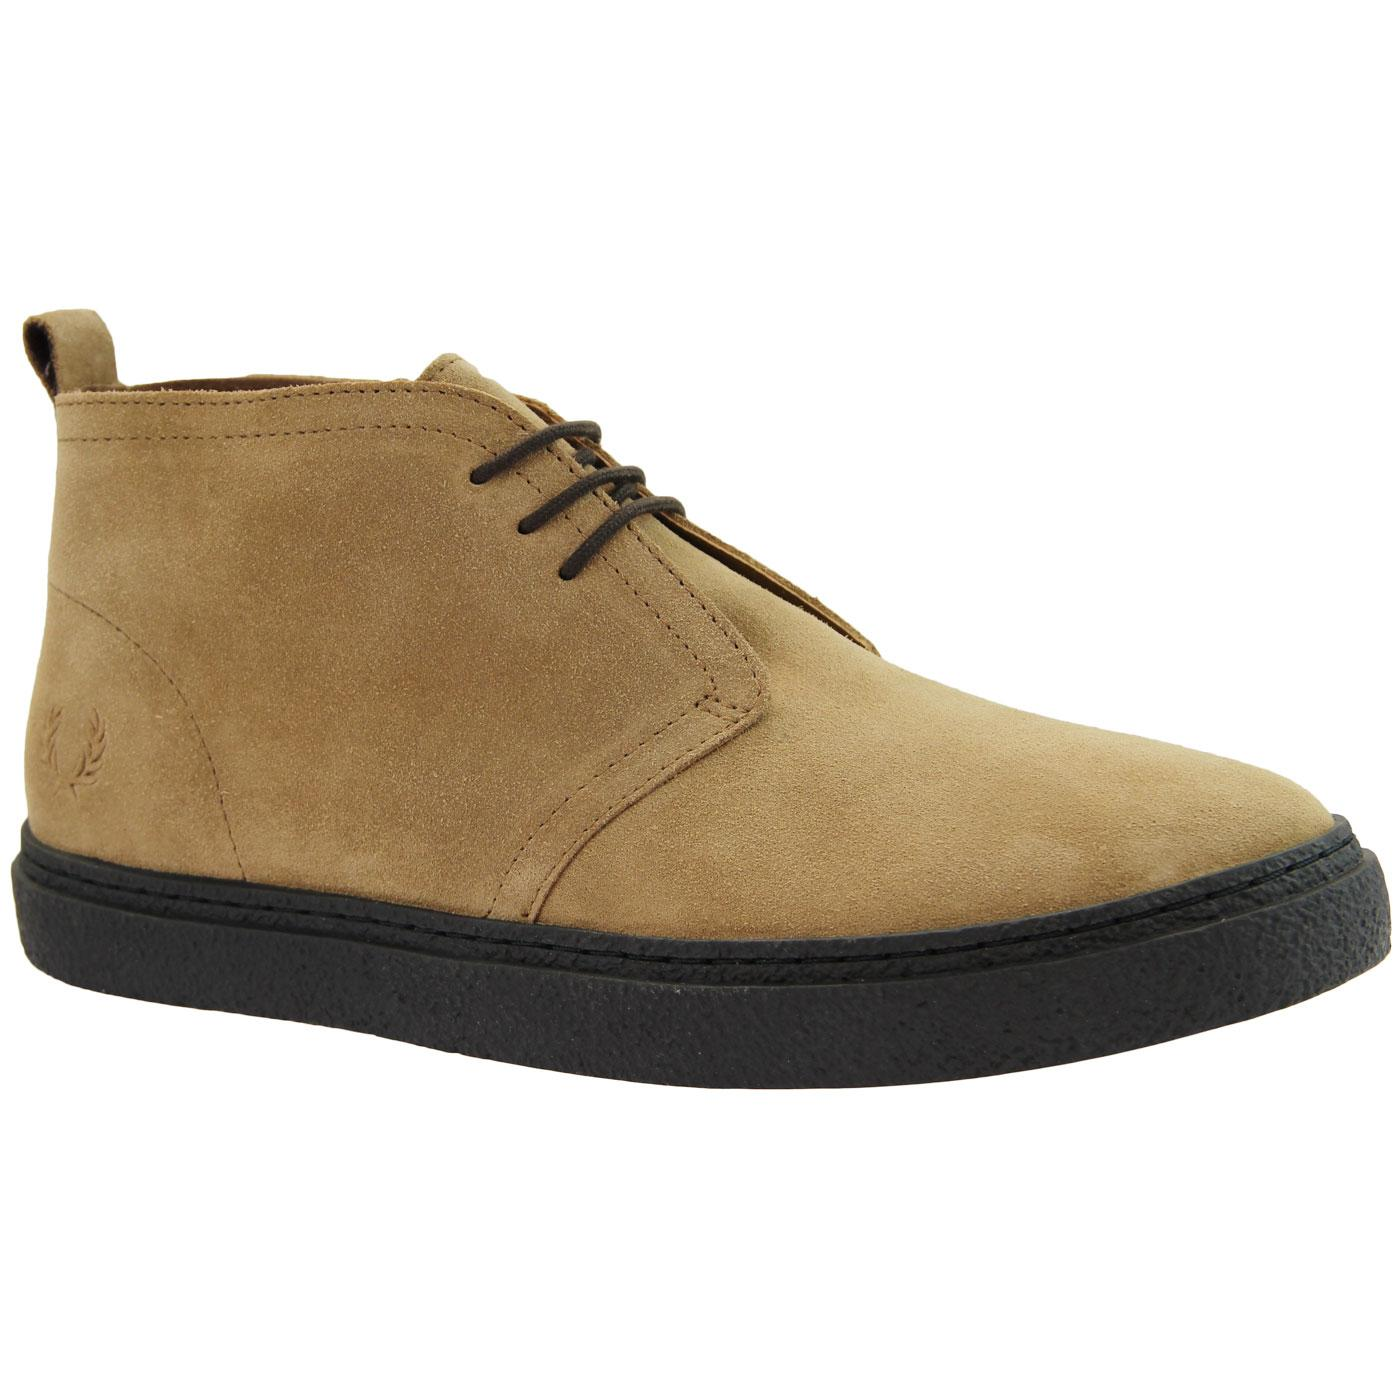 Hawley FRED PERRY Retro Mod Desert Boots - Almond